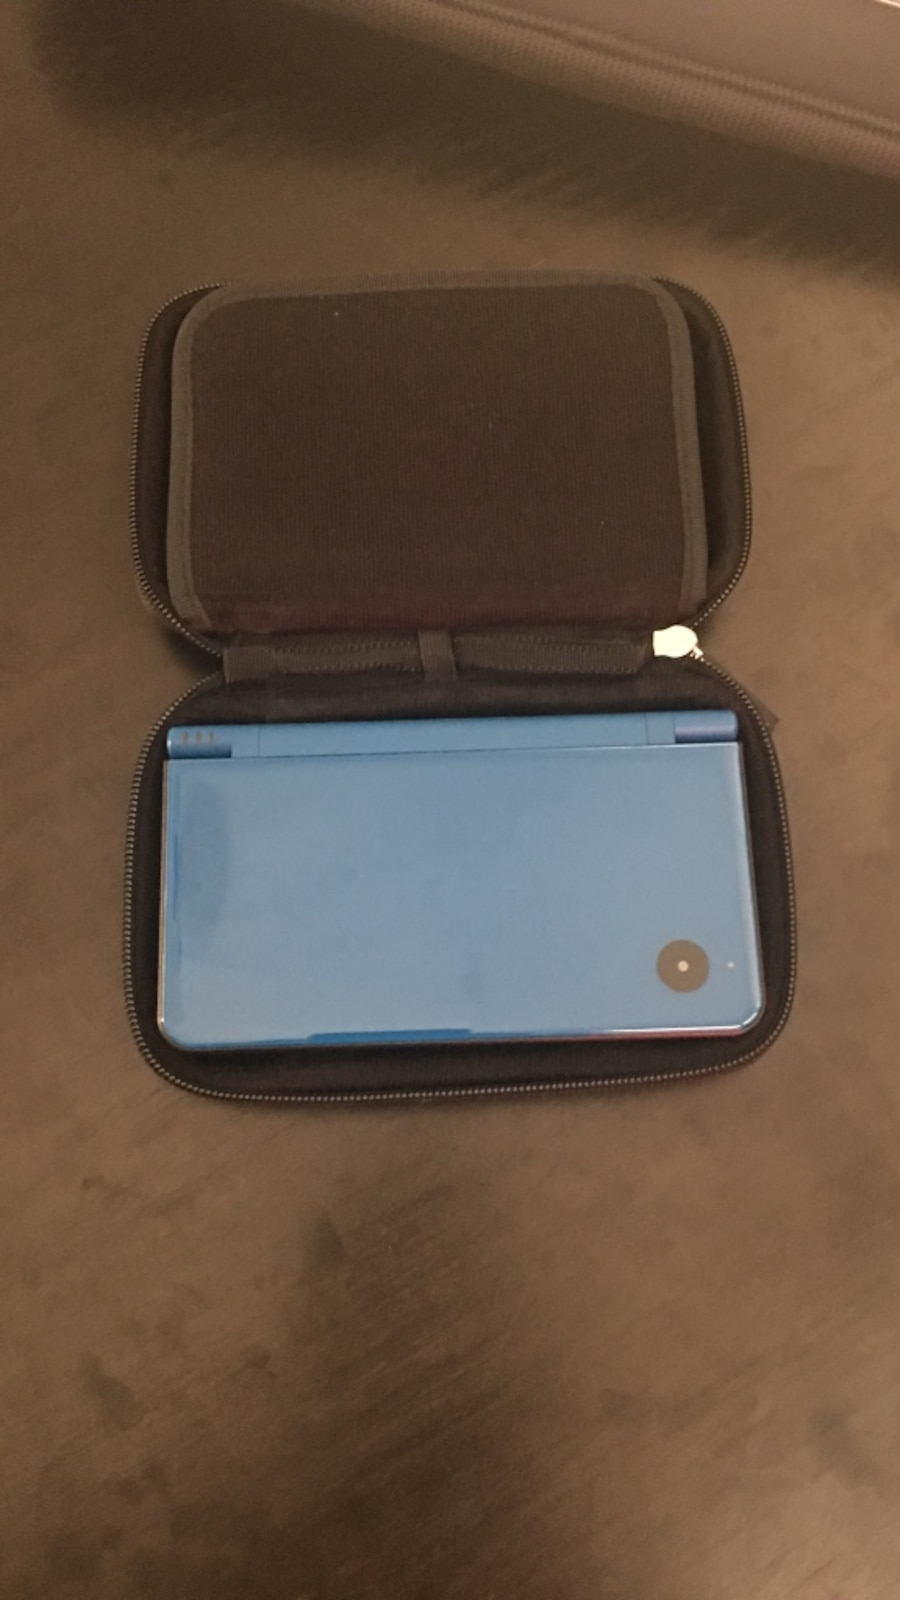 Nintendo DS XL includes 8 games, charger and carry case - good condition